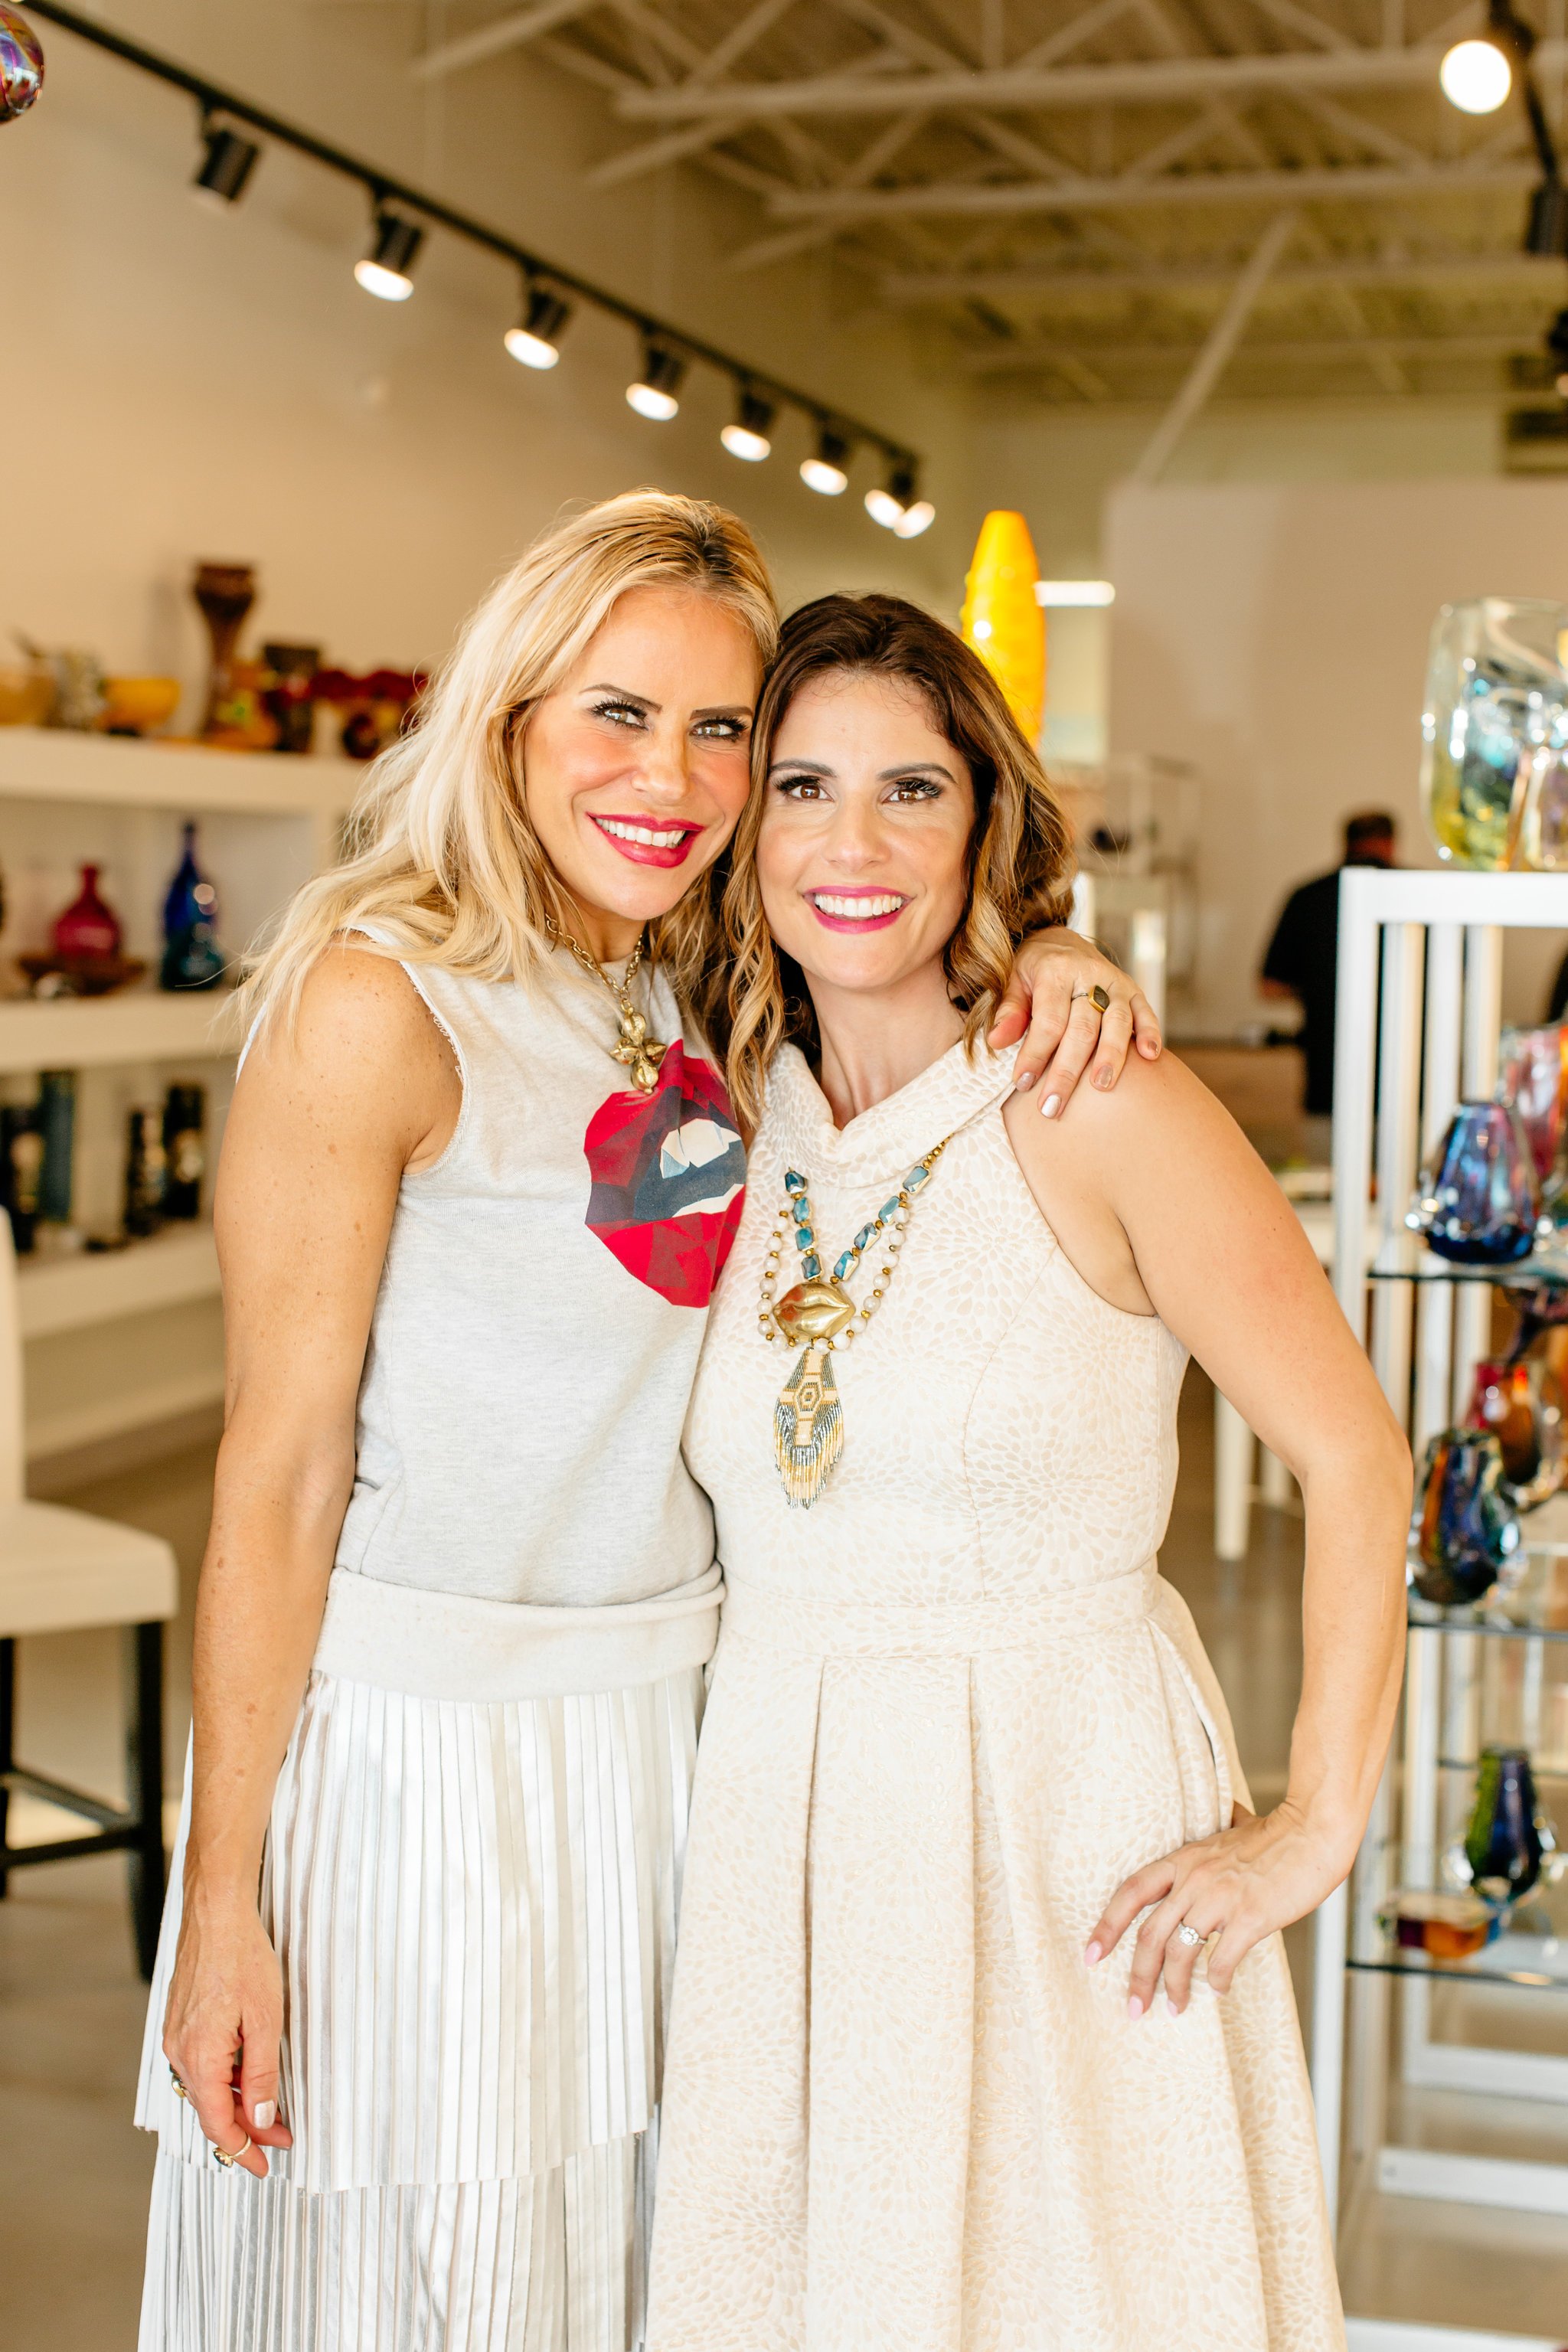 Alexa-Vossler-Photo_Dallas-Event-Photographer_Brite-Bar-Beauty-2018-Lipstick-Launch-Party-153.jpg